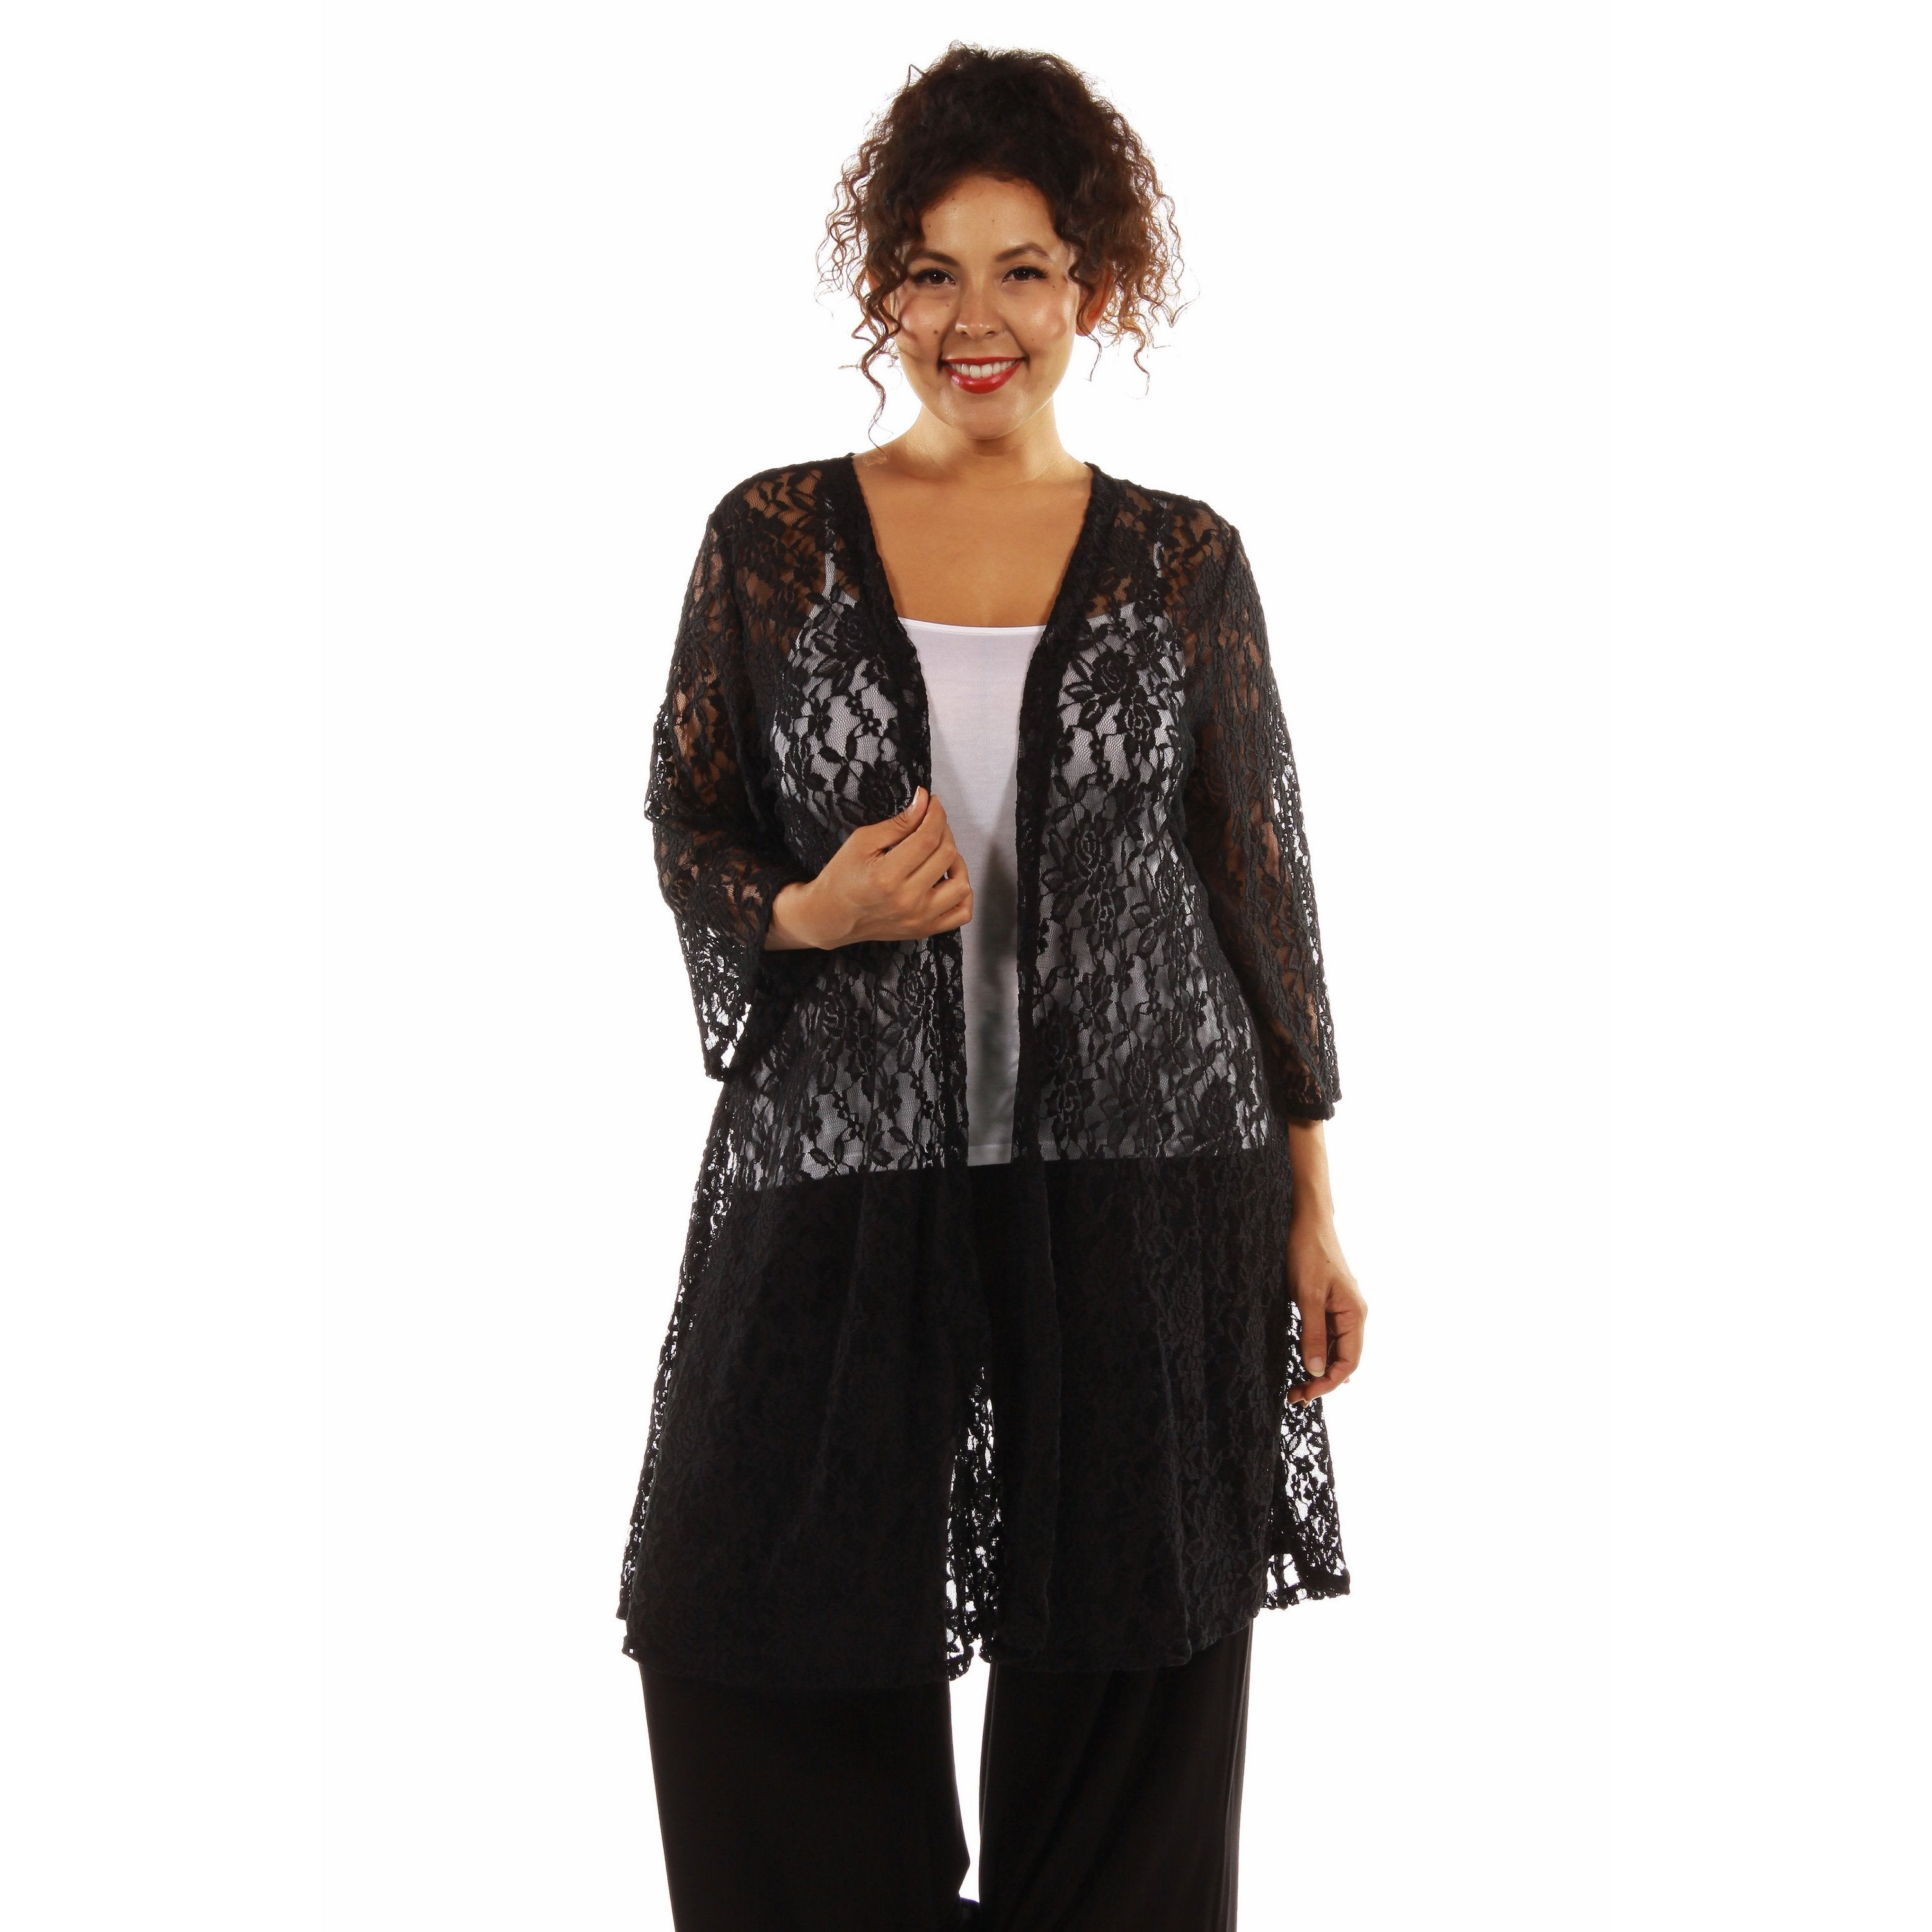 Shop 24 7 Comfort Apparel Women s Elegant Lace Plus Size Cardigan Shrug -  On Sale - Free Shipping On Orders Over  45 - Overstock - 13082362 1d359f967